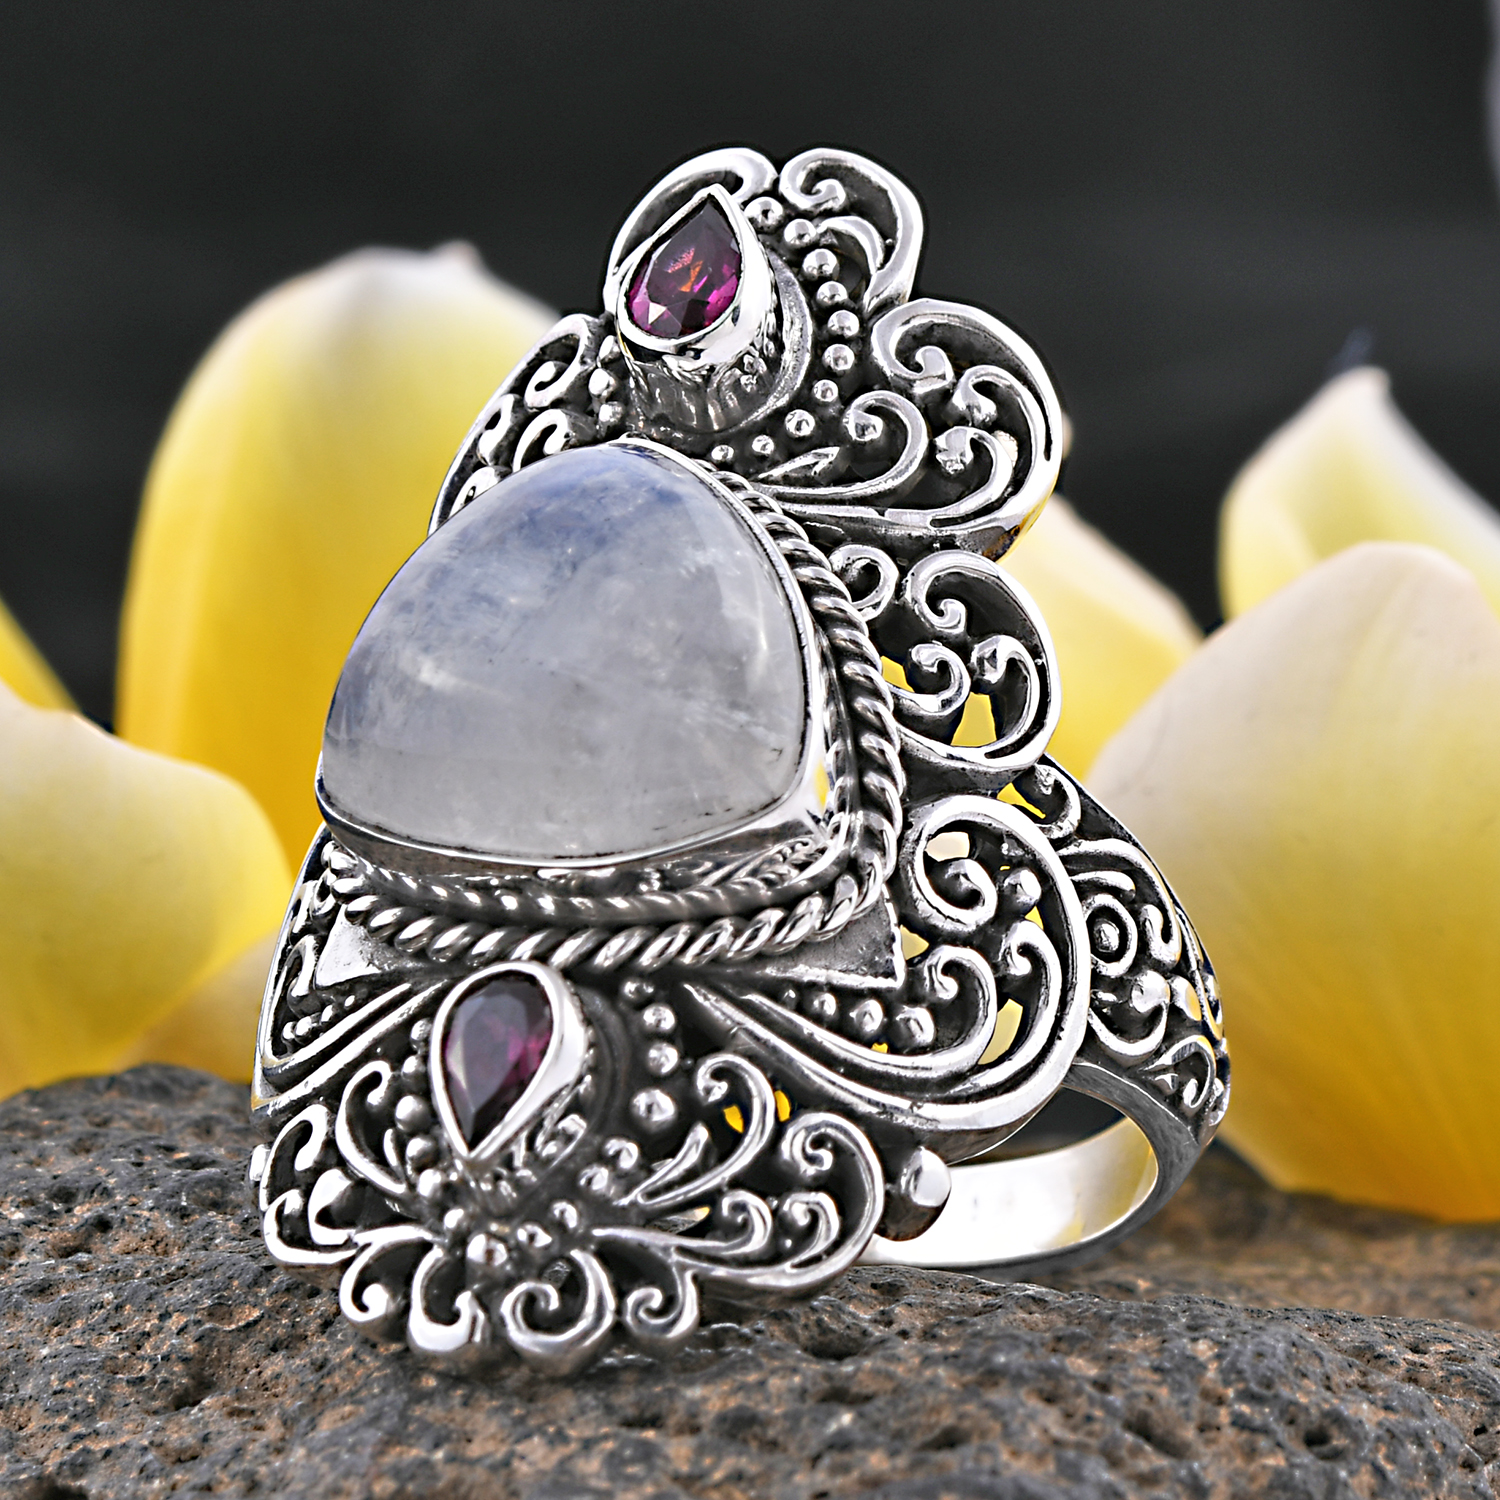 Ornate moonstone ring from Bali.